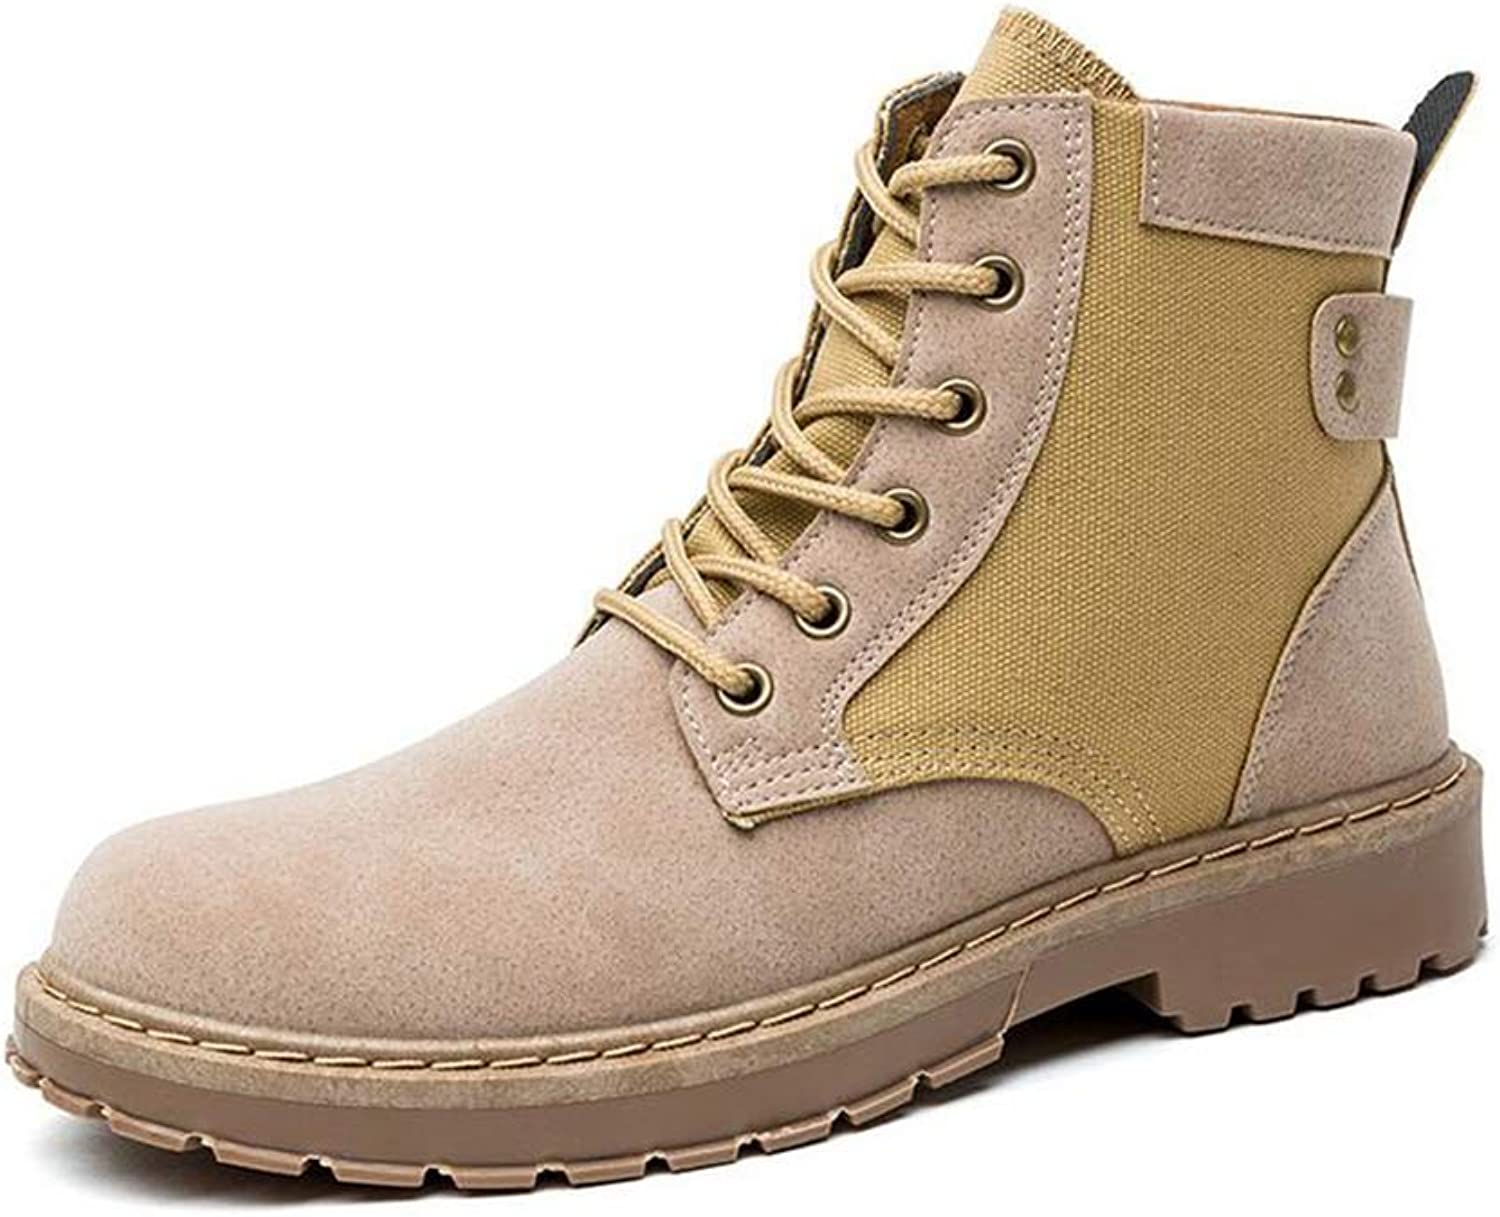 Y-H Men's Tooling Boots, Artificial PU Winter Lace-up High-top Martins Boots,Walking shoes,Retro Snow Military Boots (color   Yellow, Size   40)